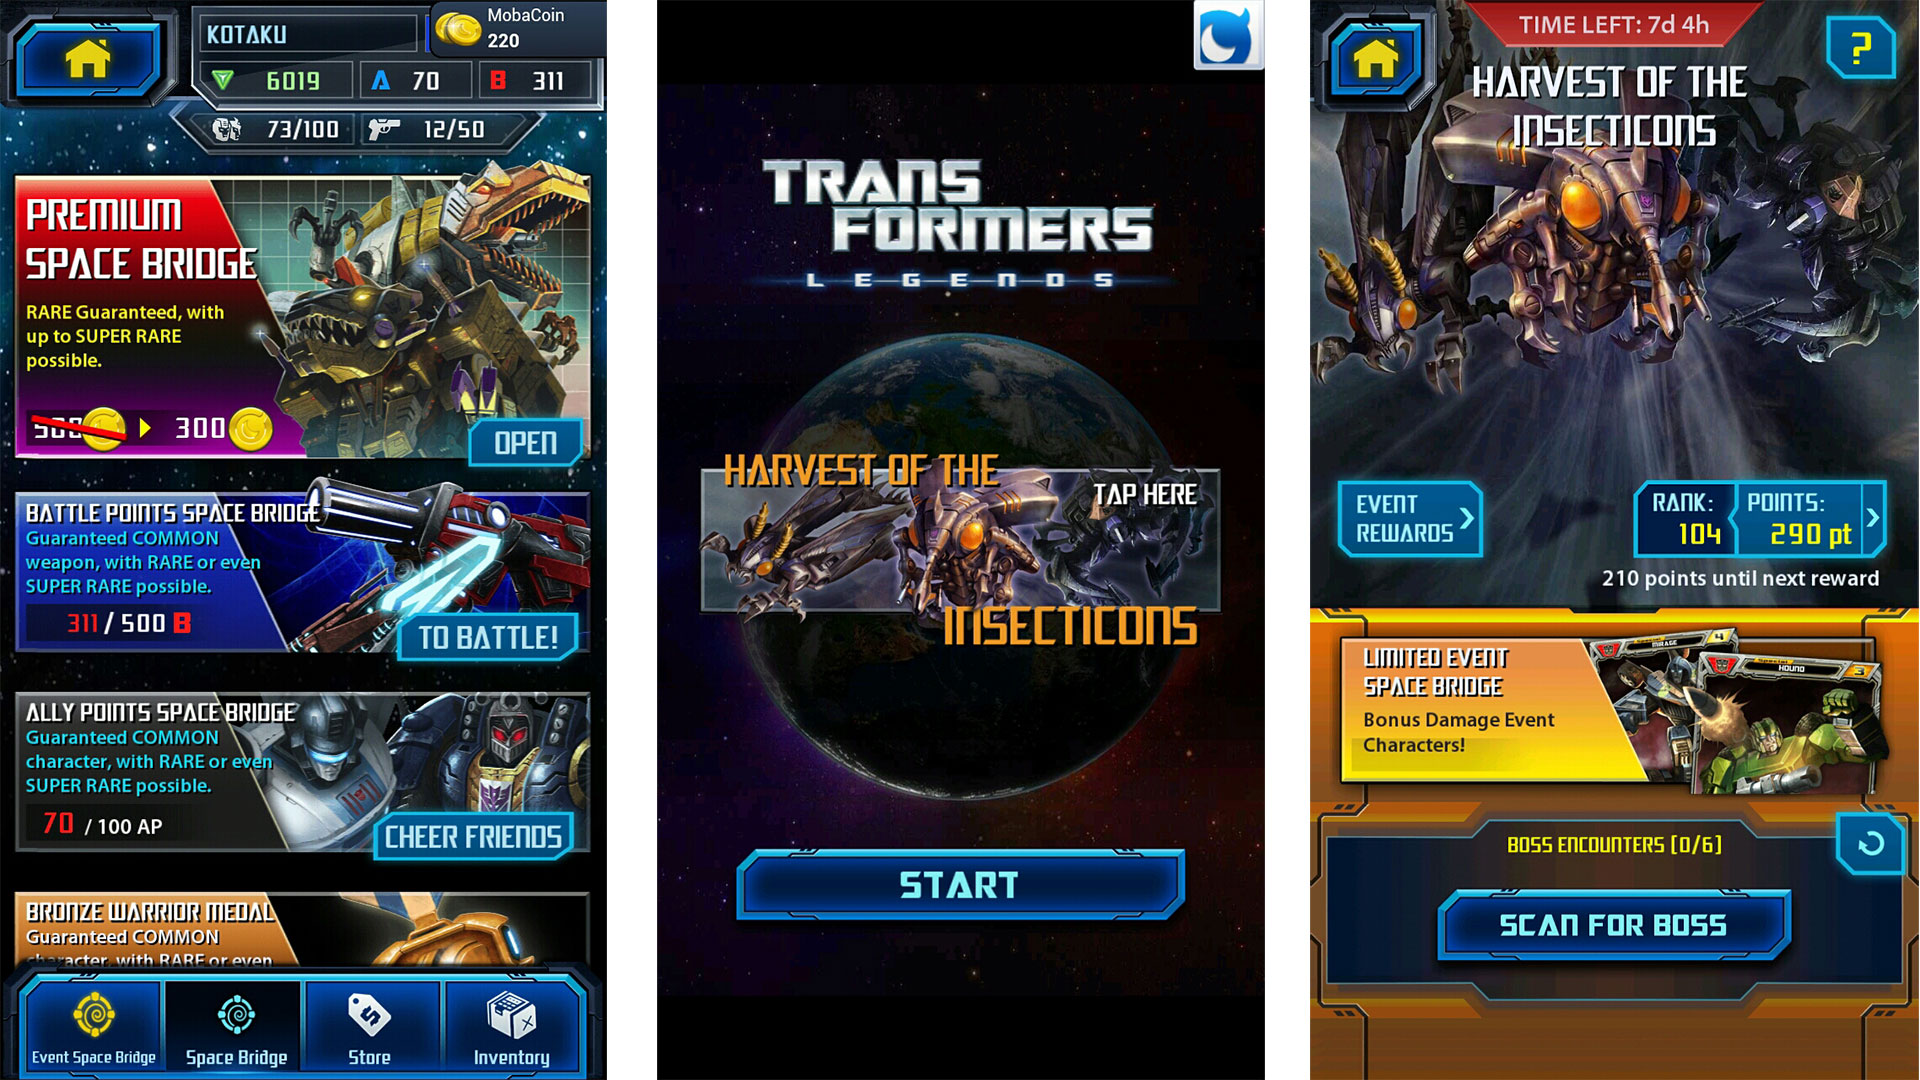 Dec 21 2012 League Of Legends Matches Are Still Awesome When In Image Entertainment Short Circuit 2 Bluray Pricefalls The Insecticons Descend Upon Transformers